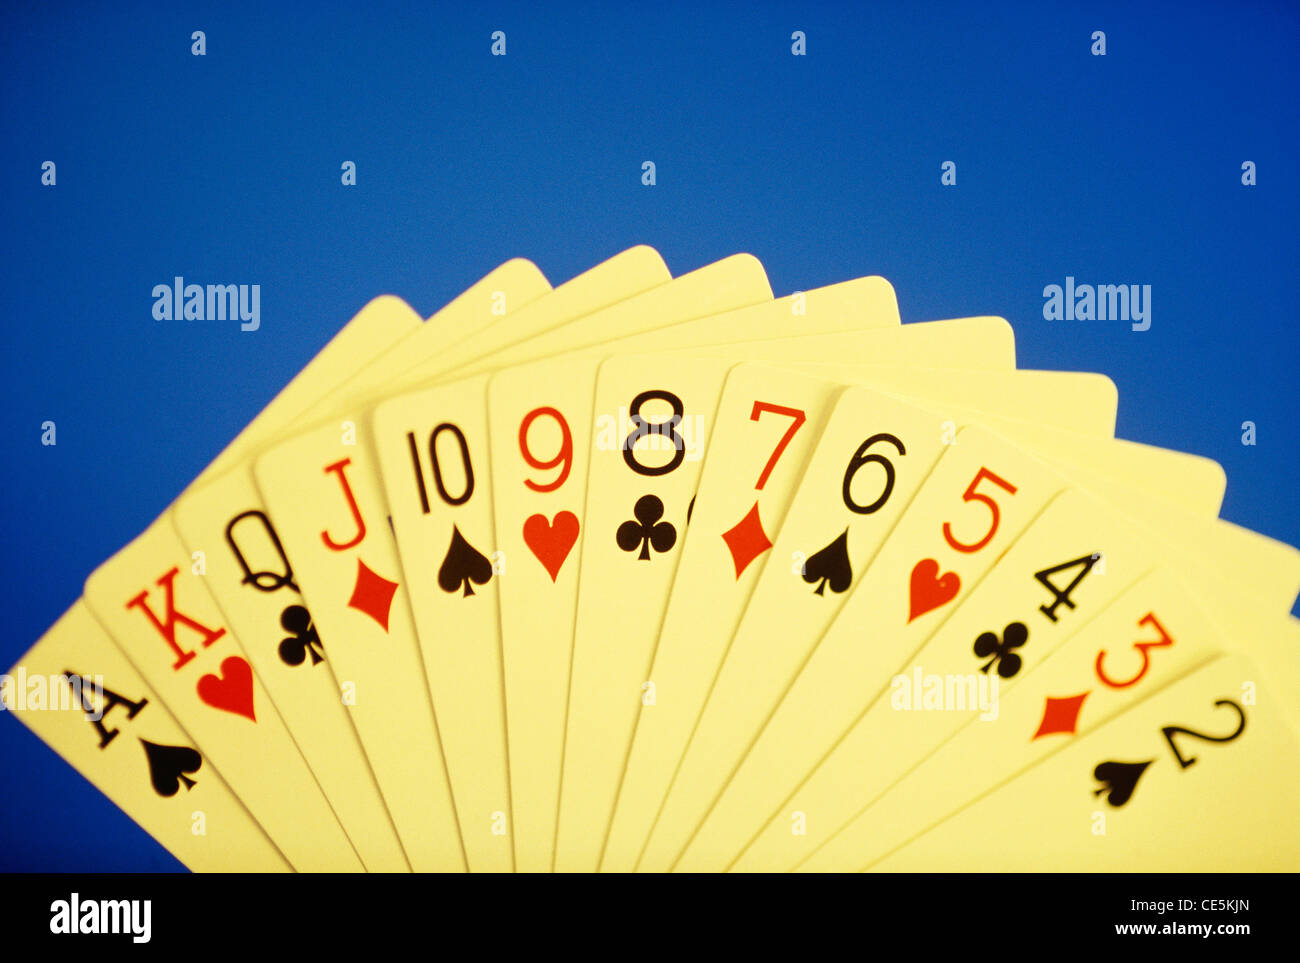 playing cards on blue background full hand 2 3 4 5 6 7 8 9 10 jack queen king ace - Stock Image